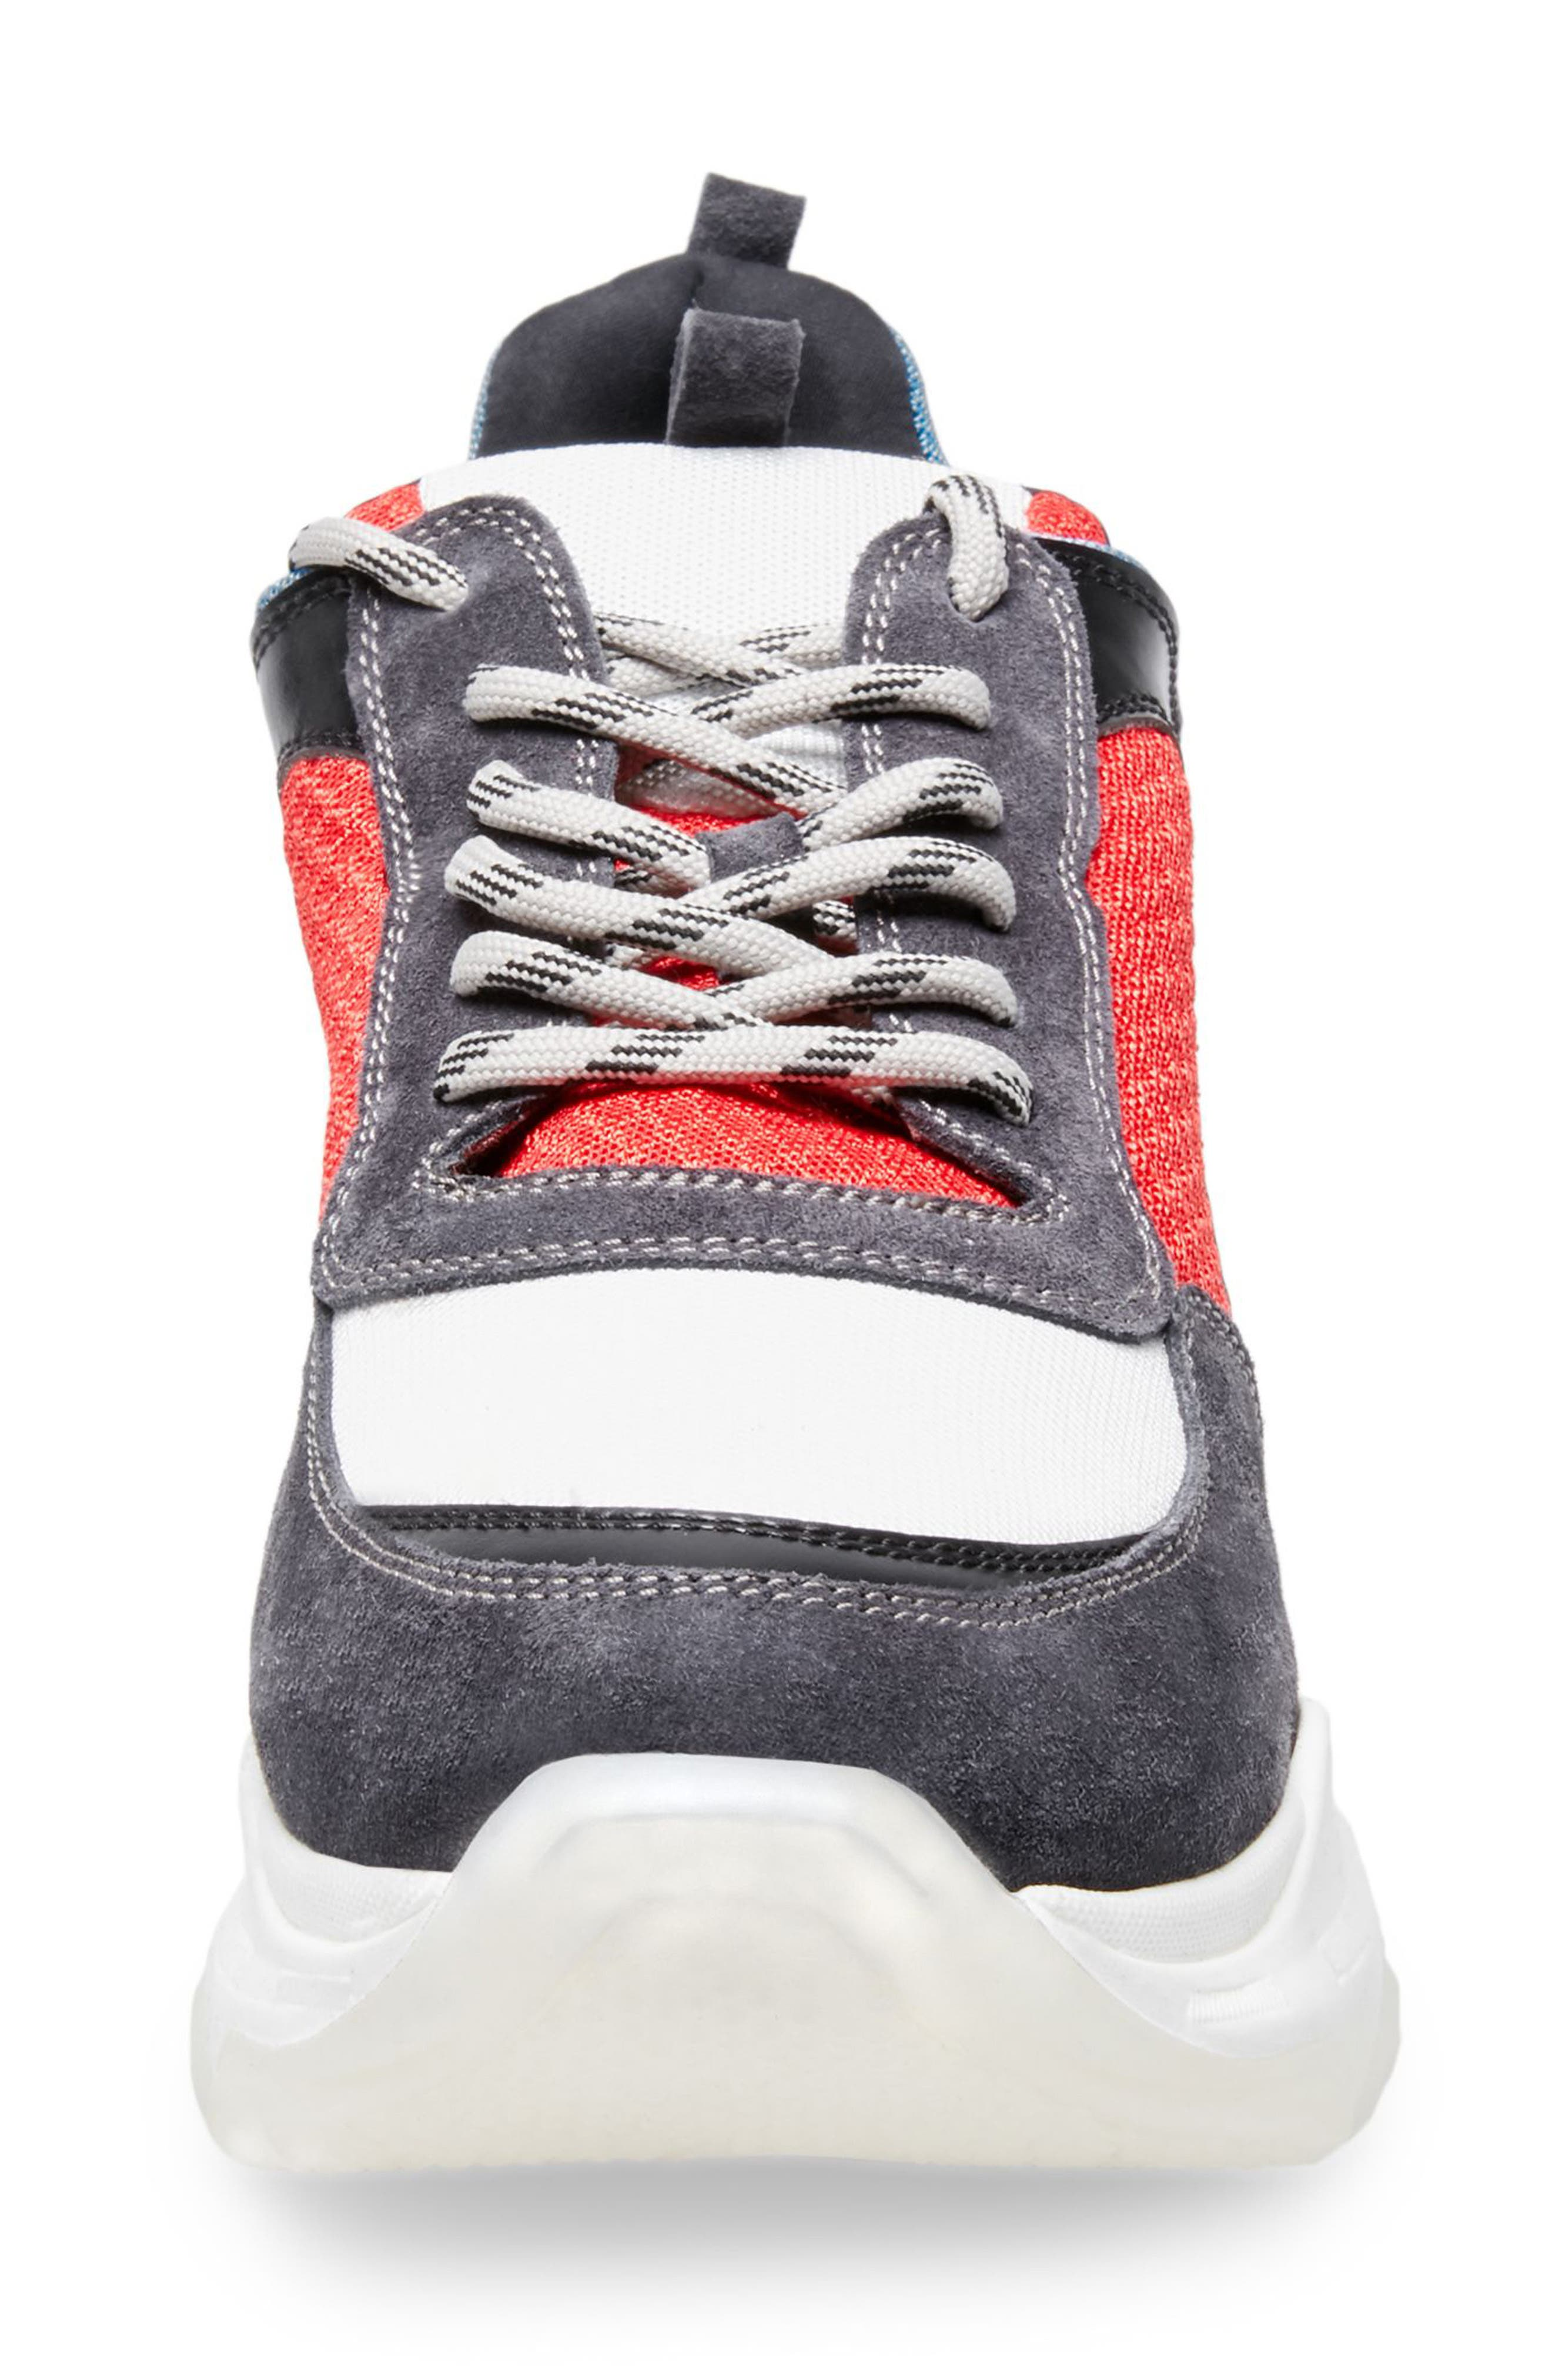 Russell Platform Sneaker,                             Alternate thumbnail 3, color,                             MULTI LEATHER